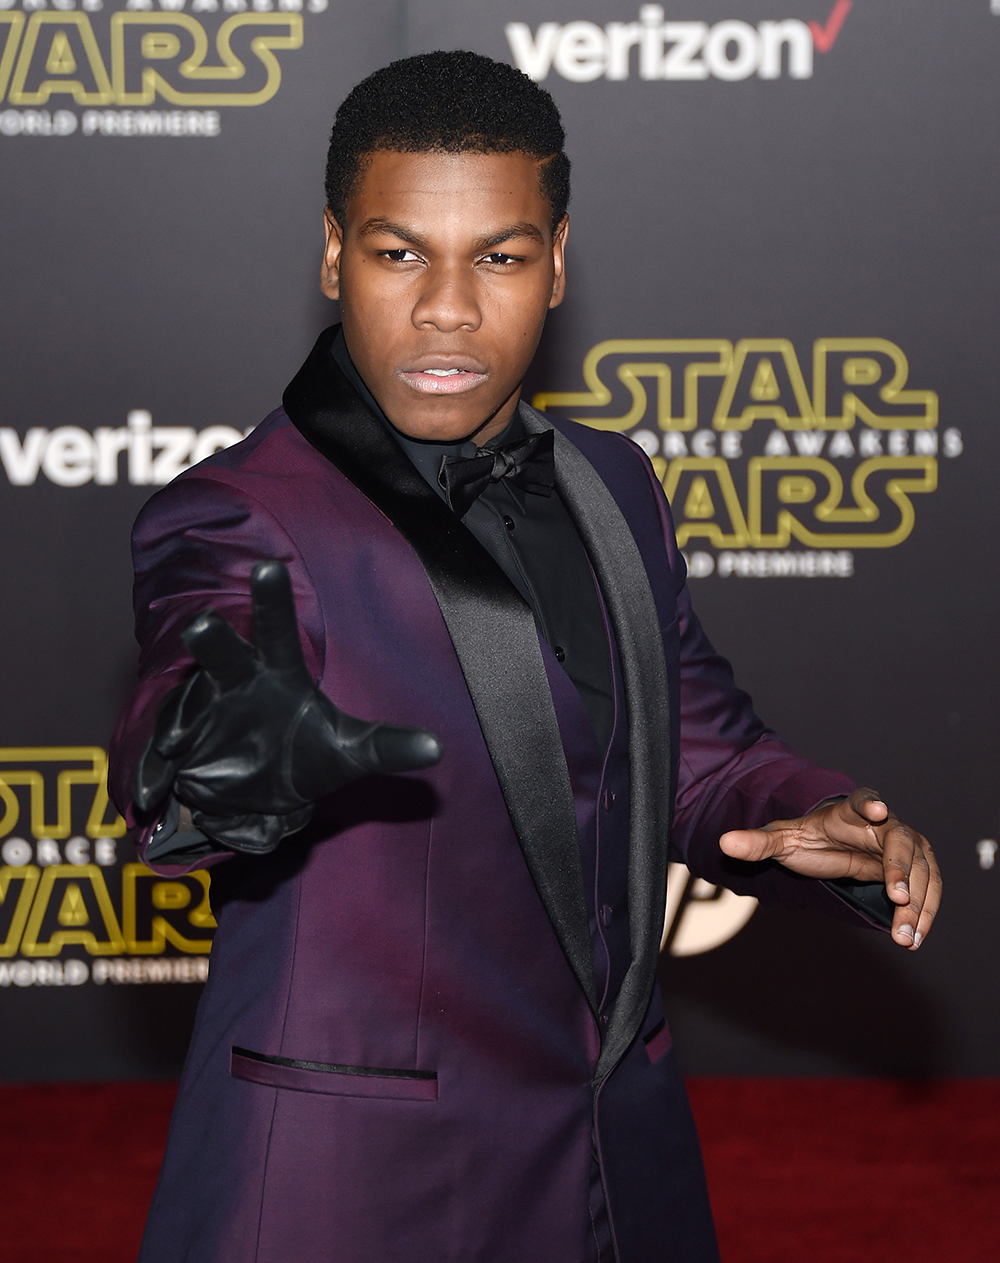 """HOLLYWOOD, CA - DECEMBER 14: Actor John Boyega attends the premiere of Walt Disney Pictures and Lucasfilm's """"Star Wars: The Force Awakens"""" at the Dolby Theatre on December 14, 2015 in Hollywood, California. Ethan Miller/Getty Images/AFP"""